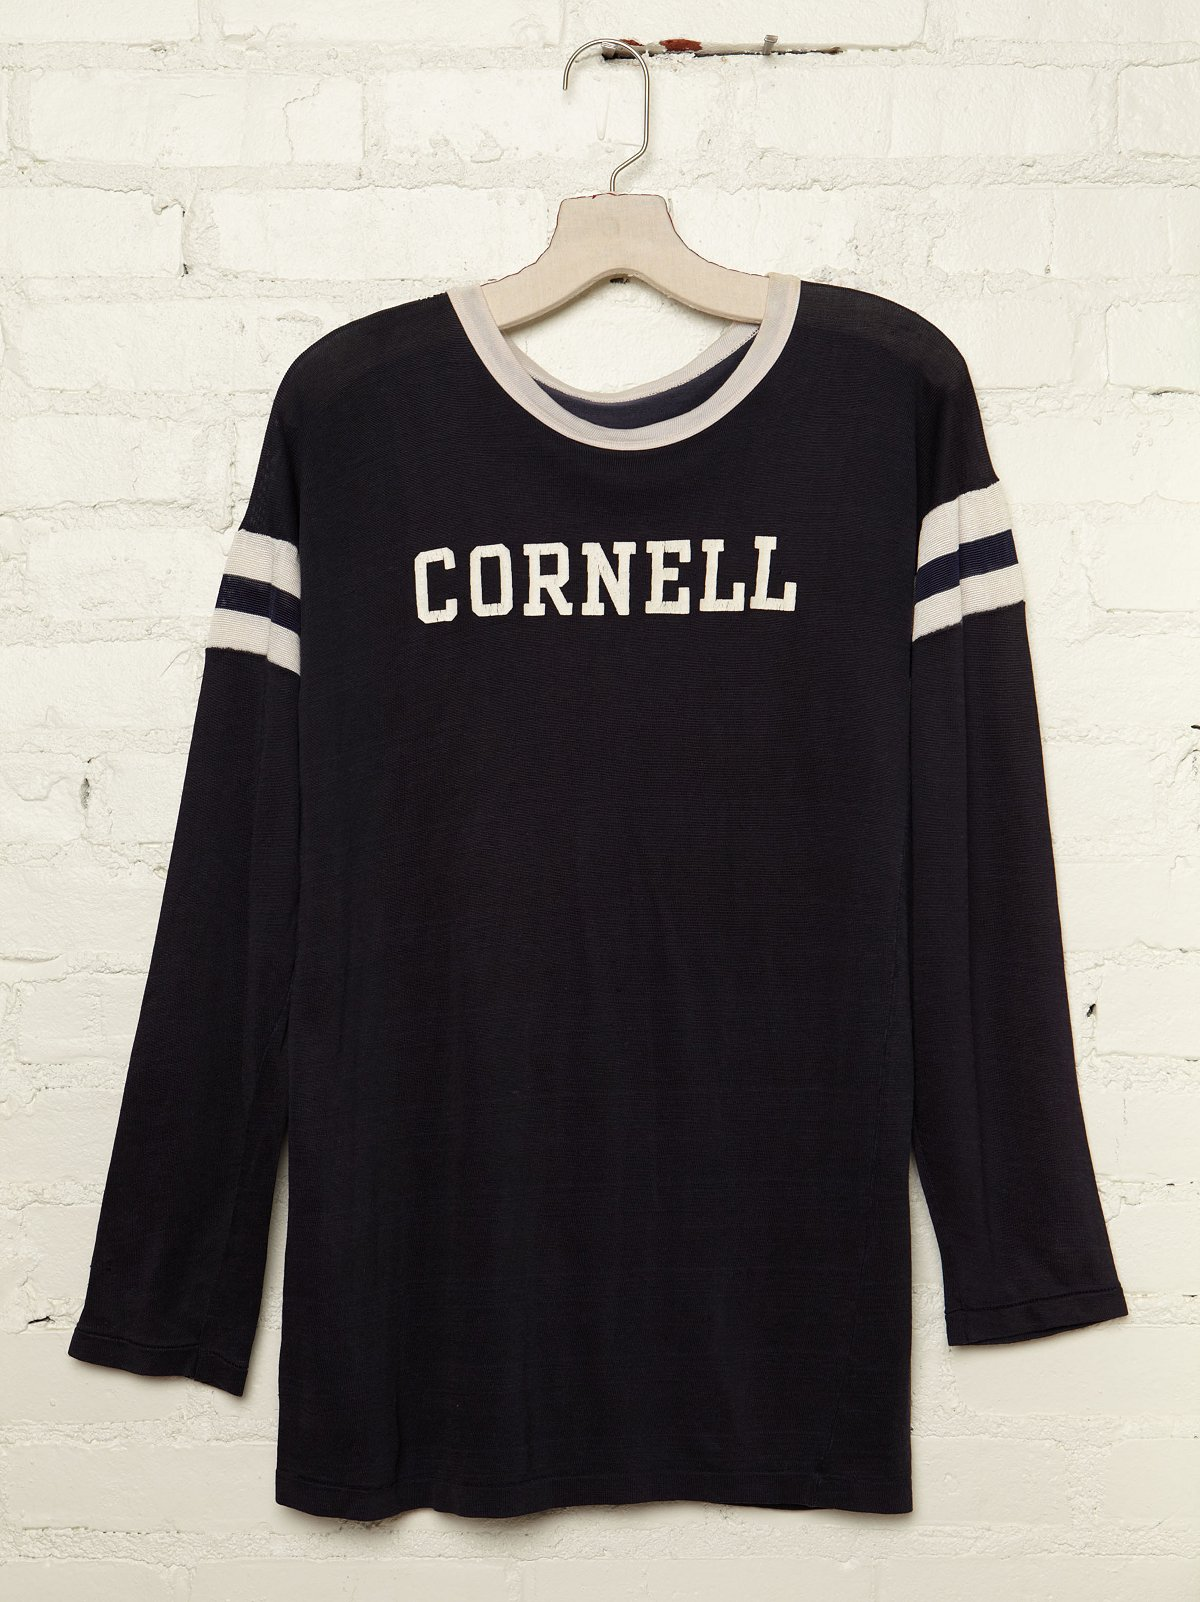 Vintage Cornell Long Sleeve Jersey Tee